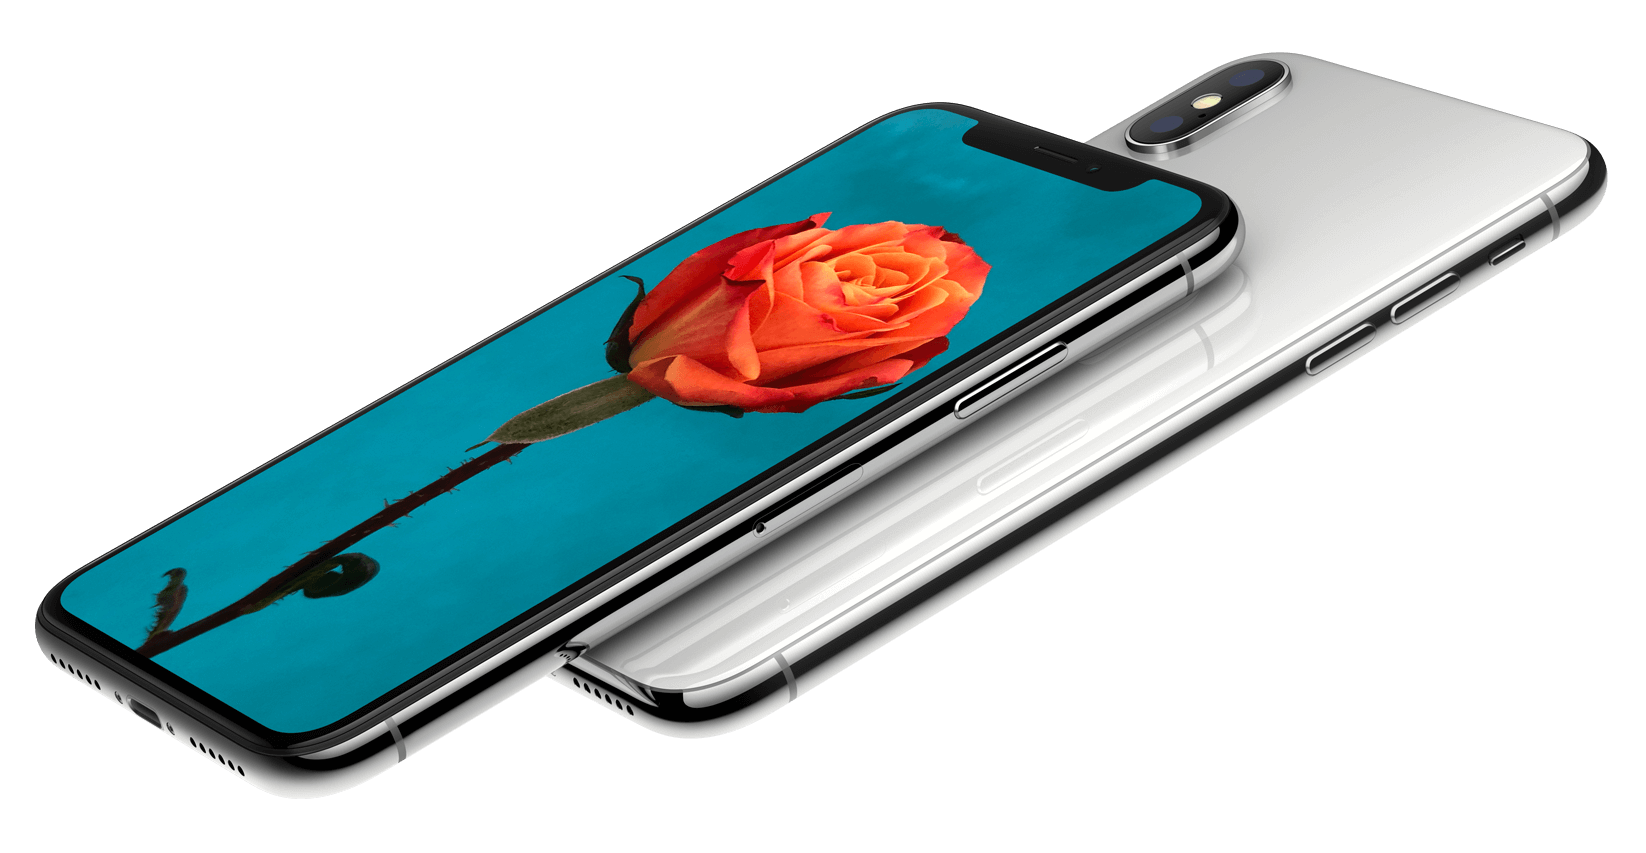 Apple iPhone X's dual cameras has a new colour filter and optical image stabilisation technology so your images always come out clear and sharp. Shop now at The Good Guys.